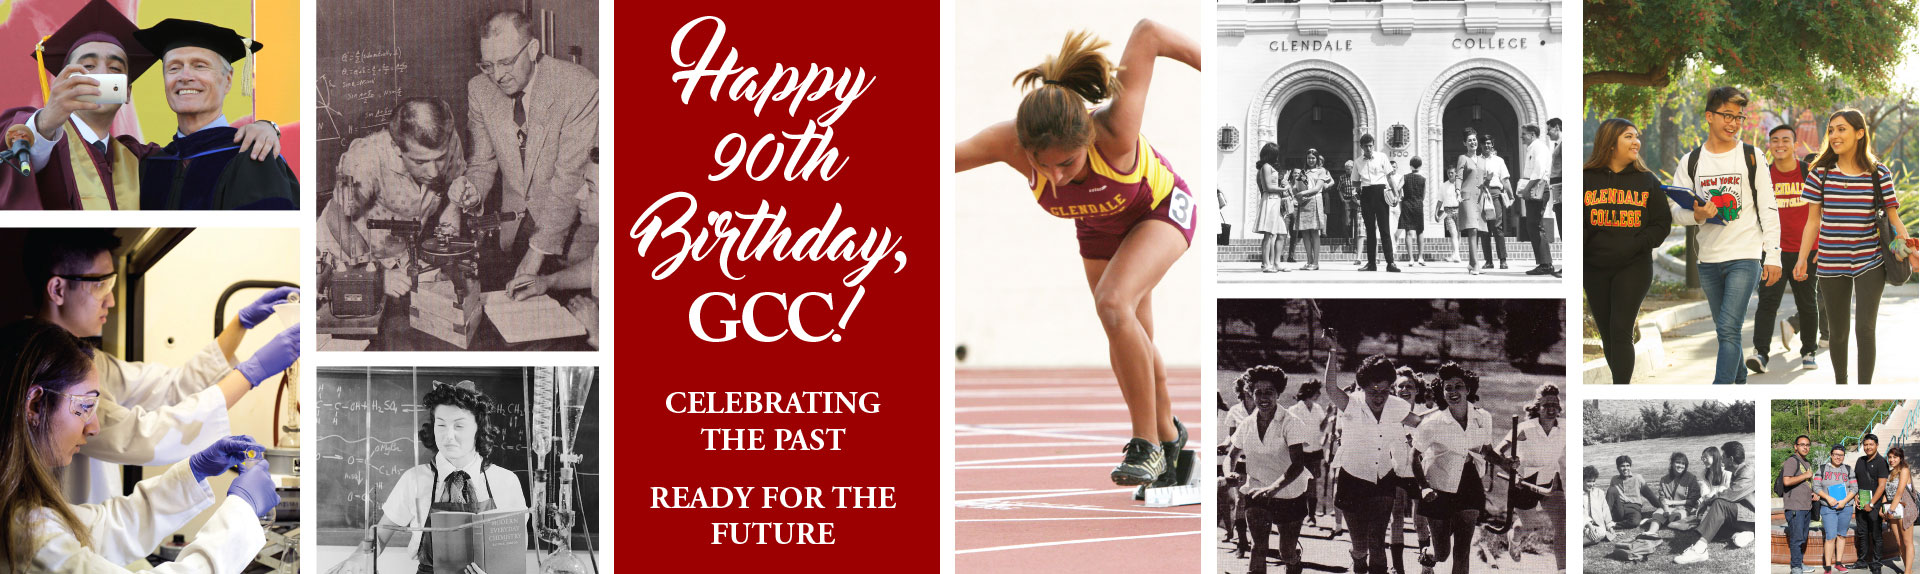 Happy 90th Birthday GCC, Celebrating the past, Ready for the future